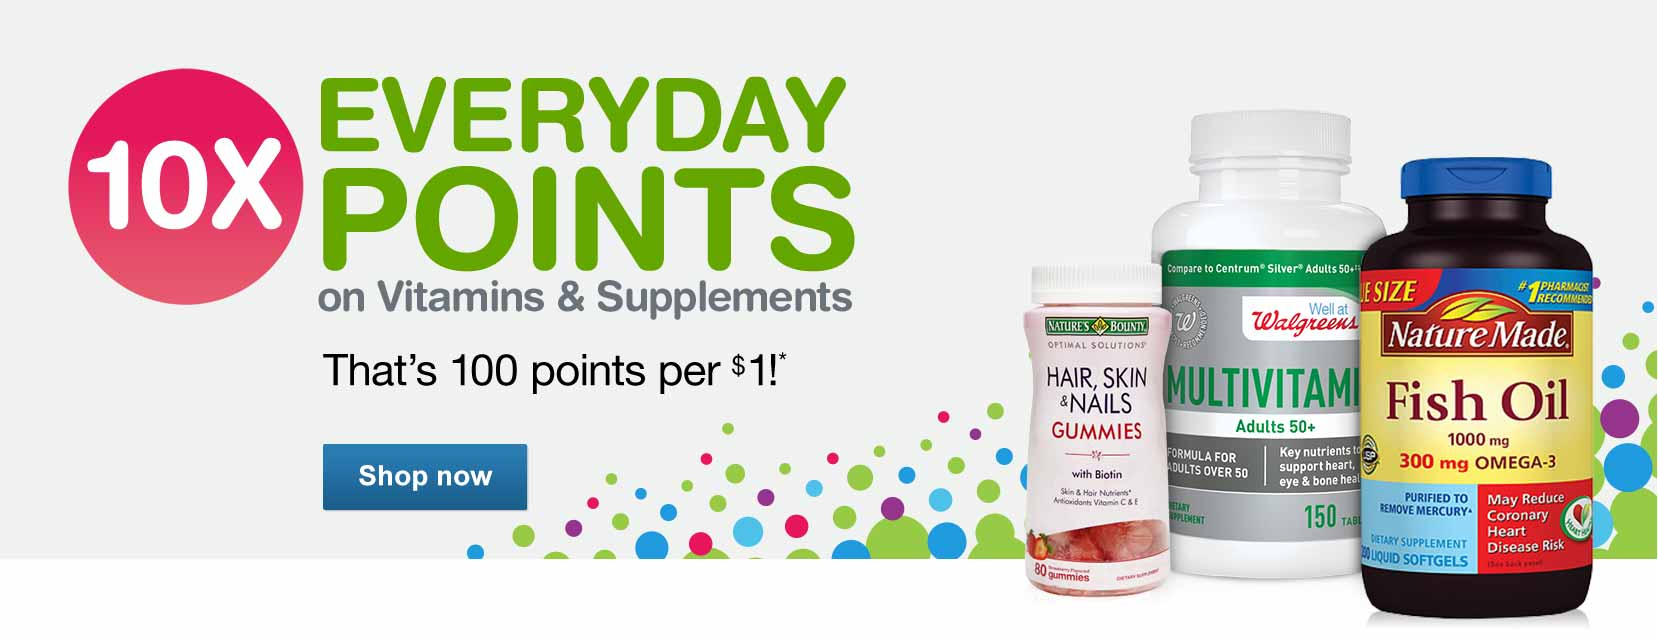 10X Everyday Points on Vitamins & Supplements. 100 points per $1!* Shop now.